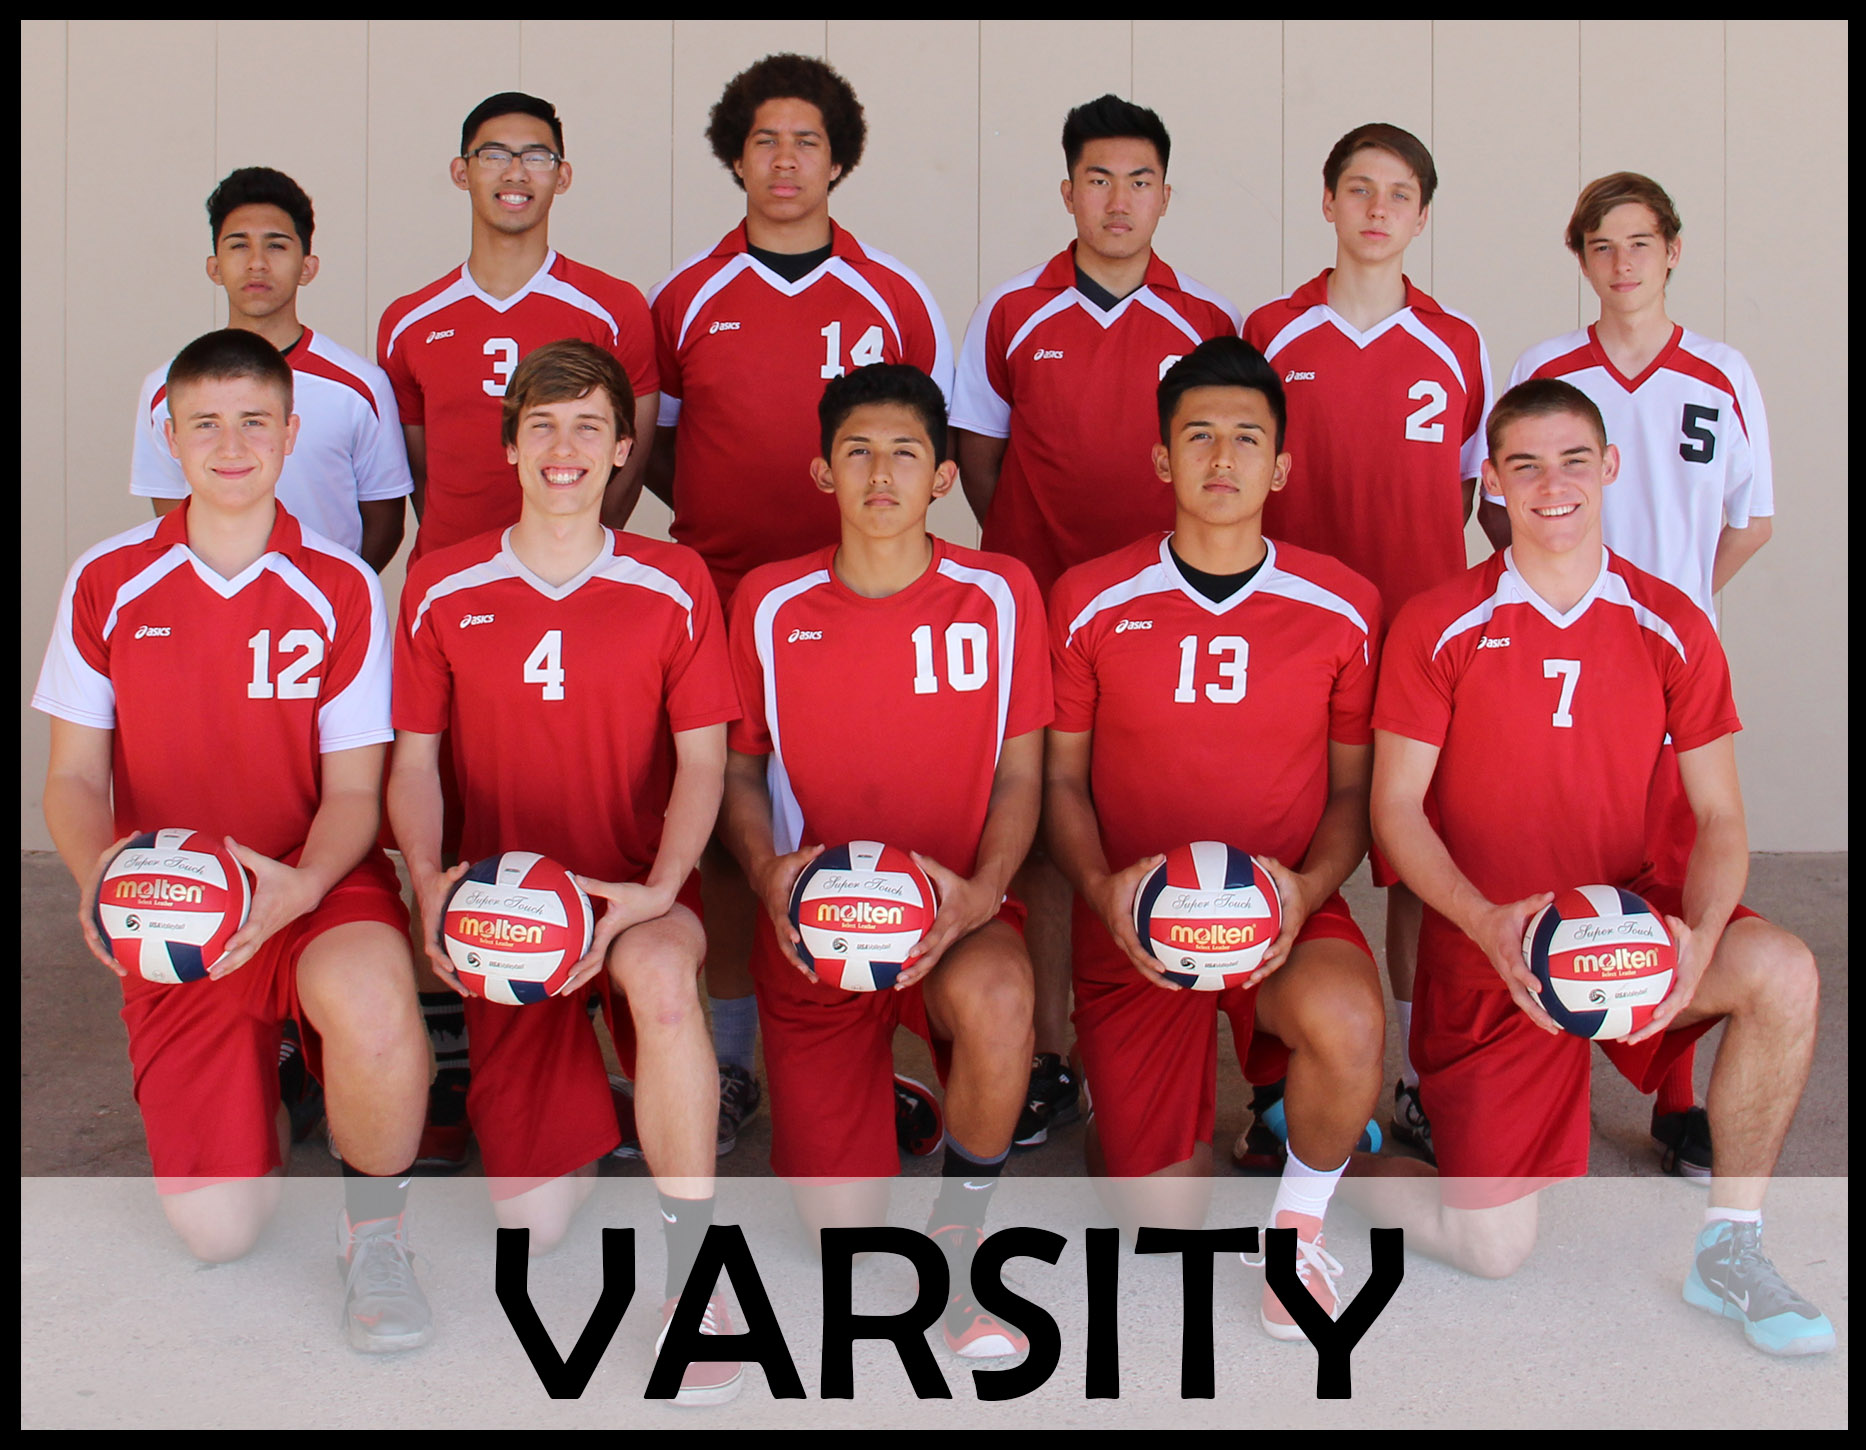 Volleyball-Boys-Varsity-2014-15-mod